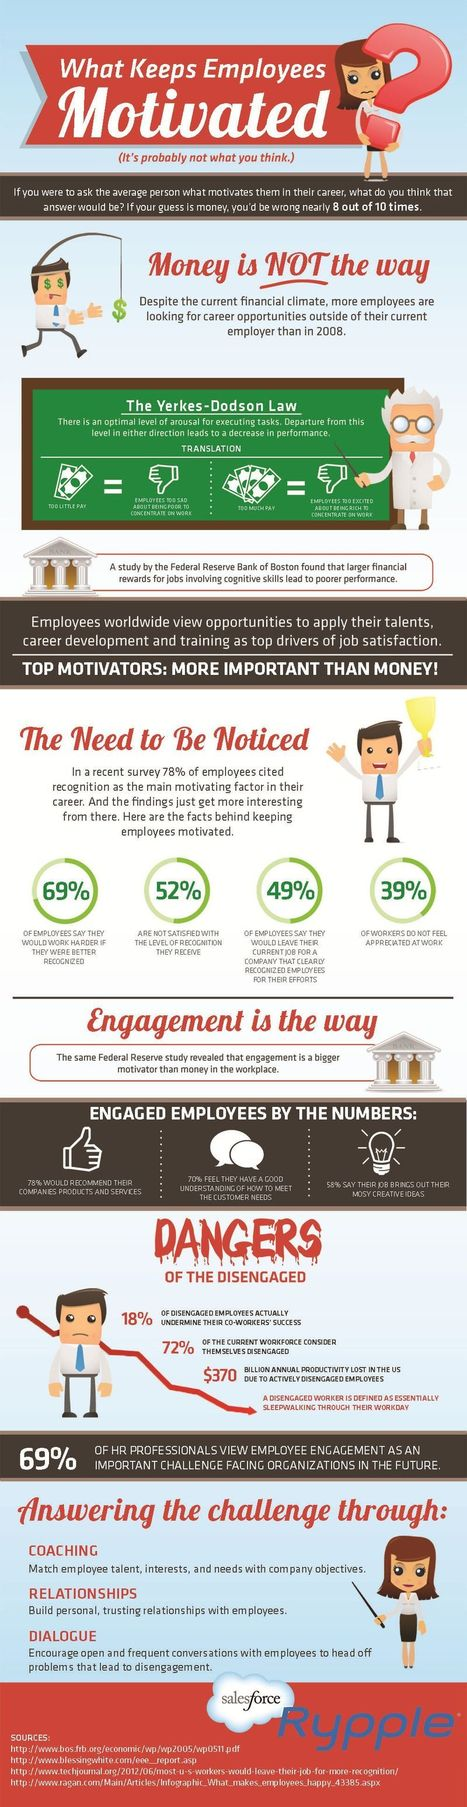 How to Motivate Your Employees [infographic] via @salesforce | Workplaces That Work | Scoop.it